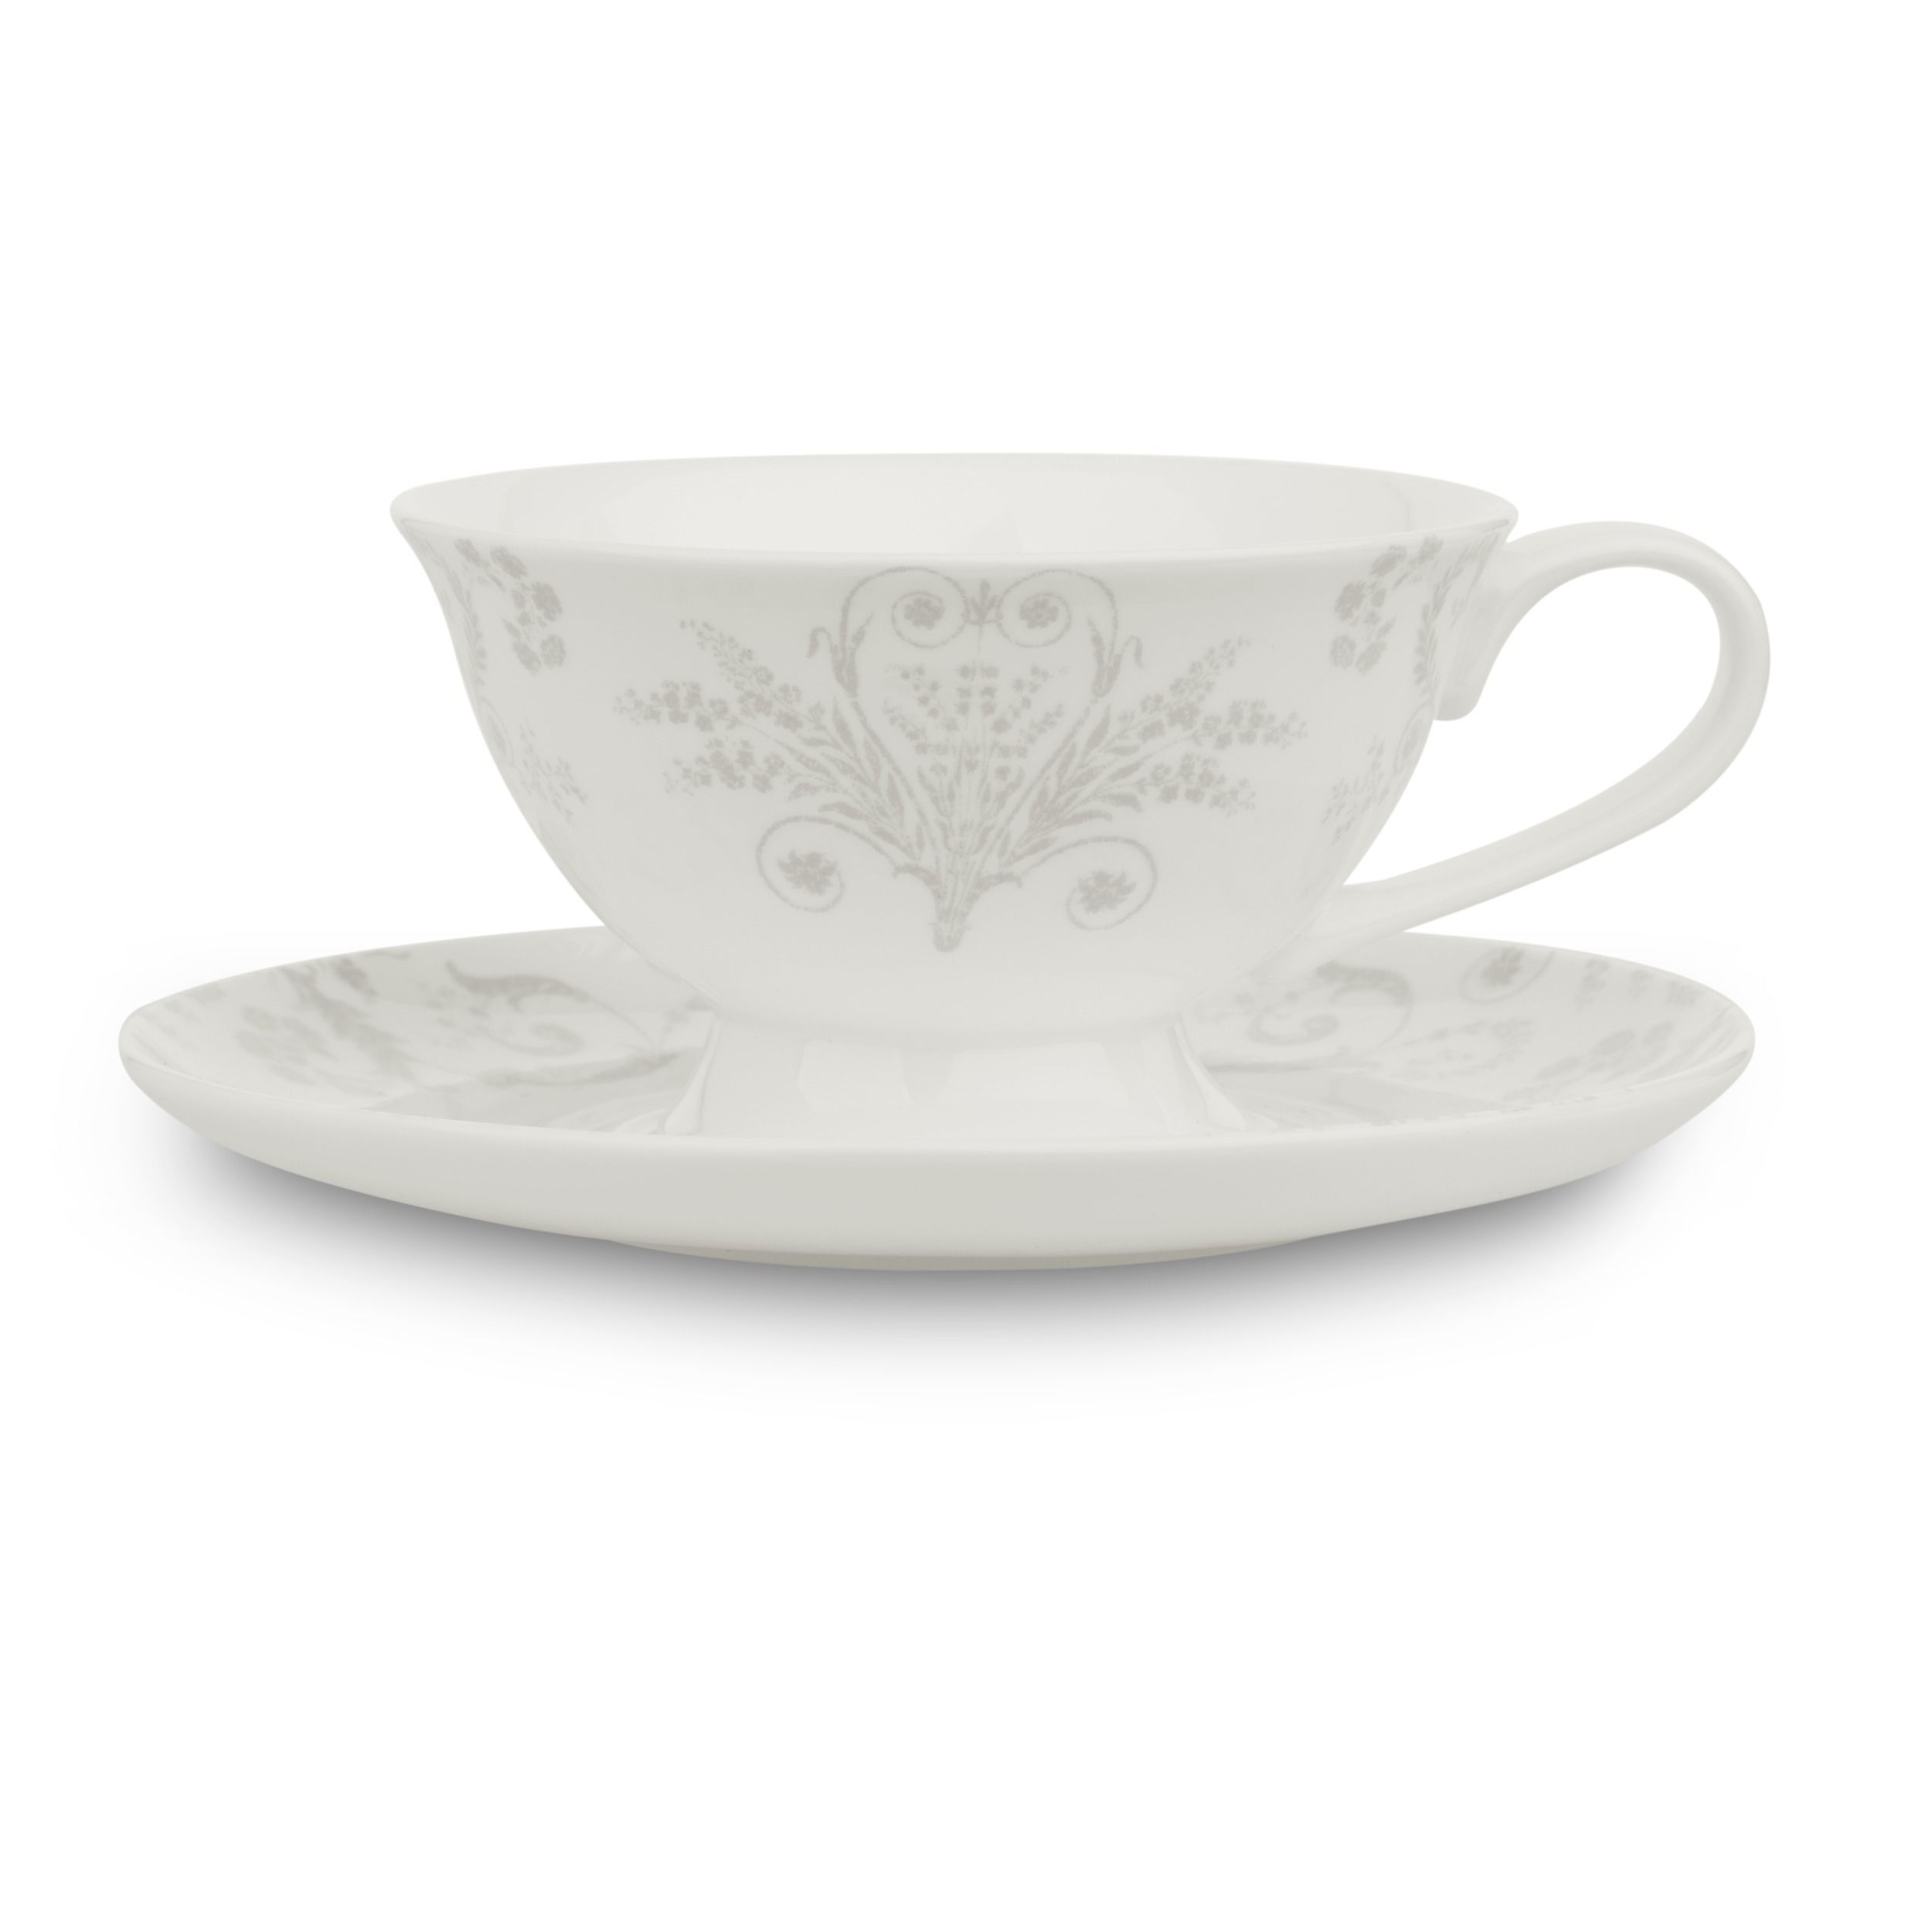 josette dove grey china cup and saucer at laura ashley terrific